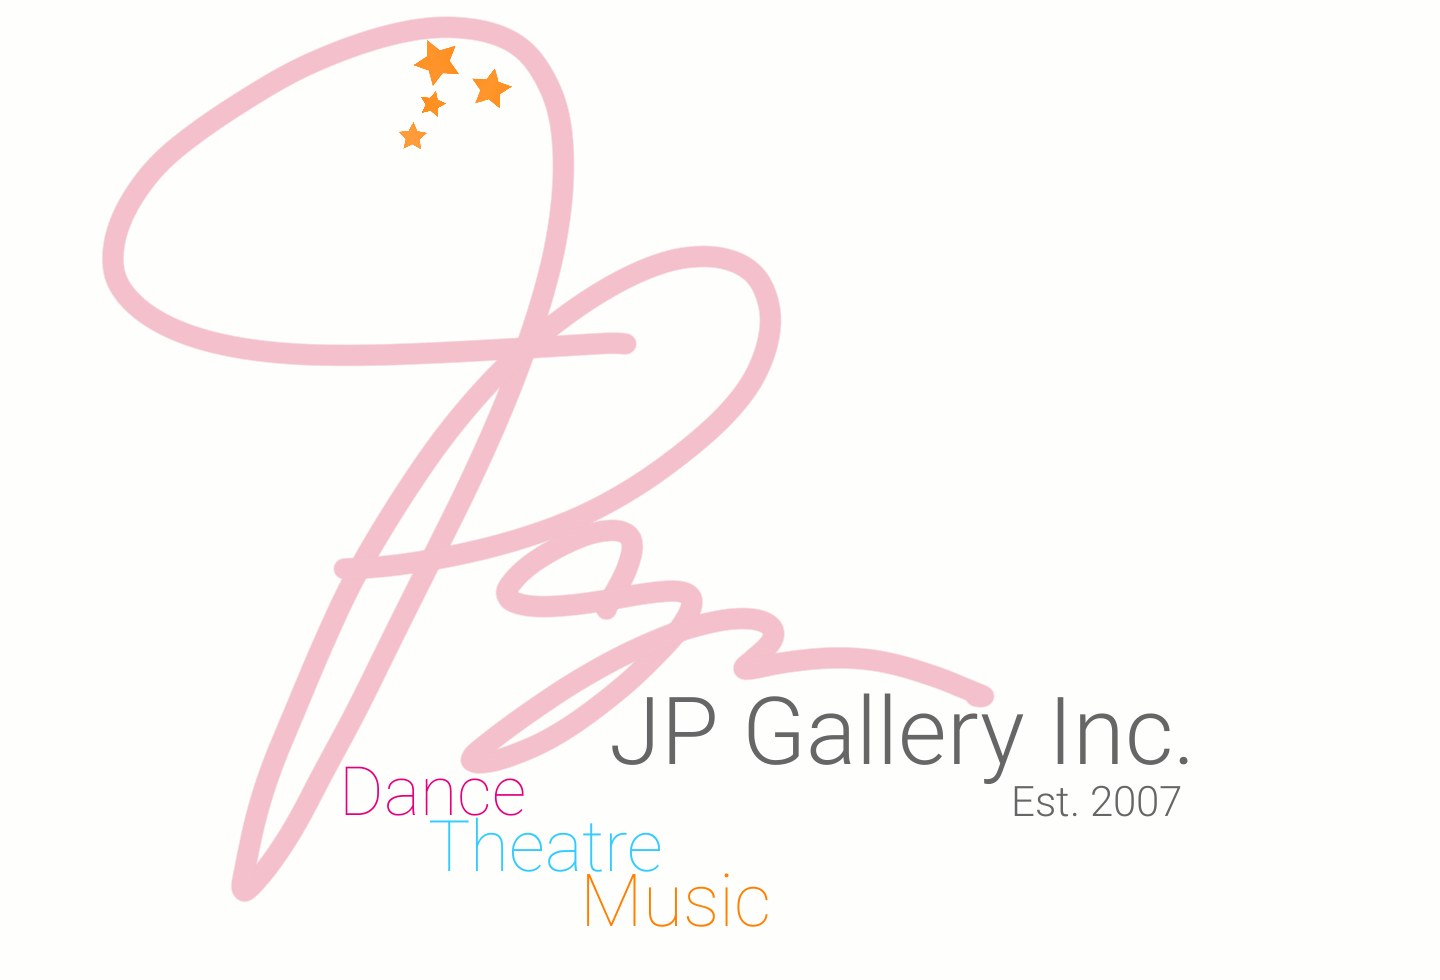 JP Gallery for Performing Arts